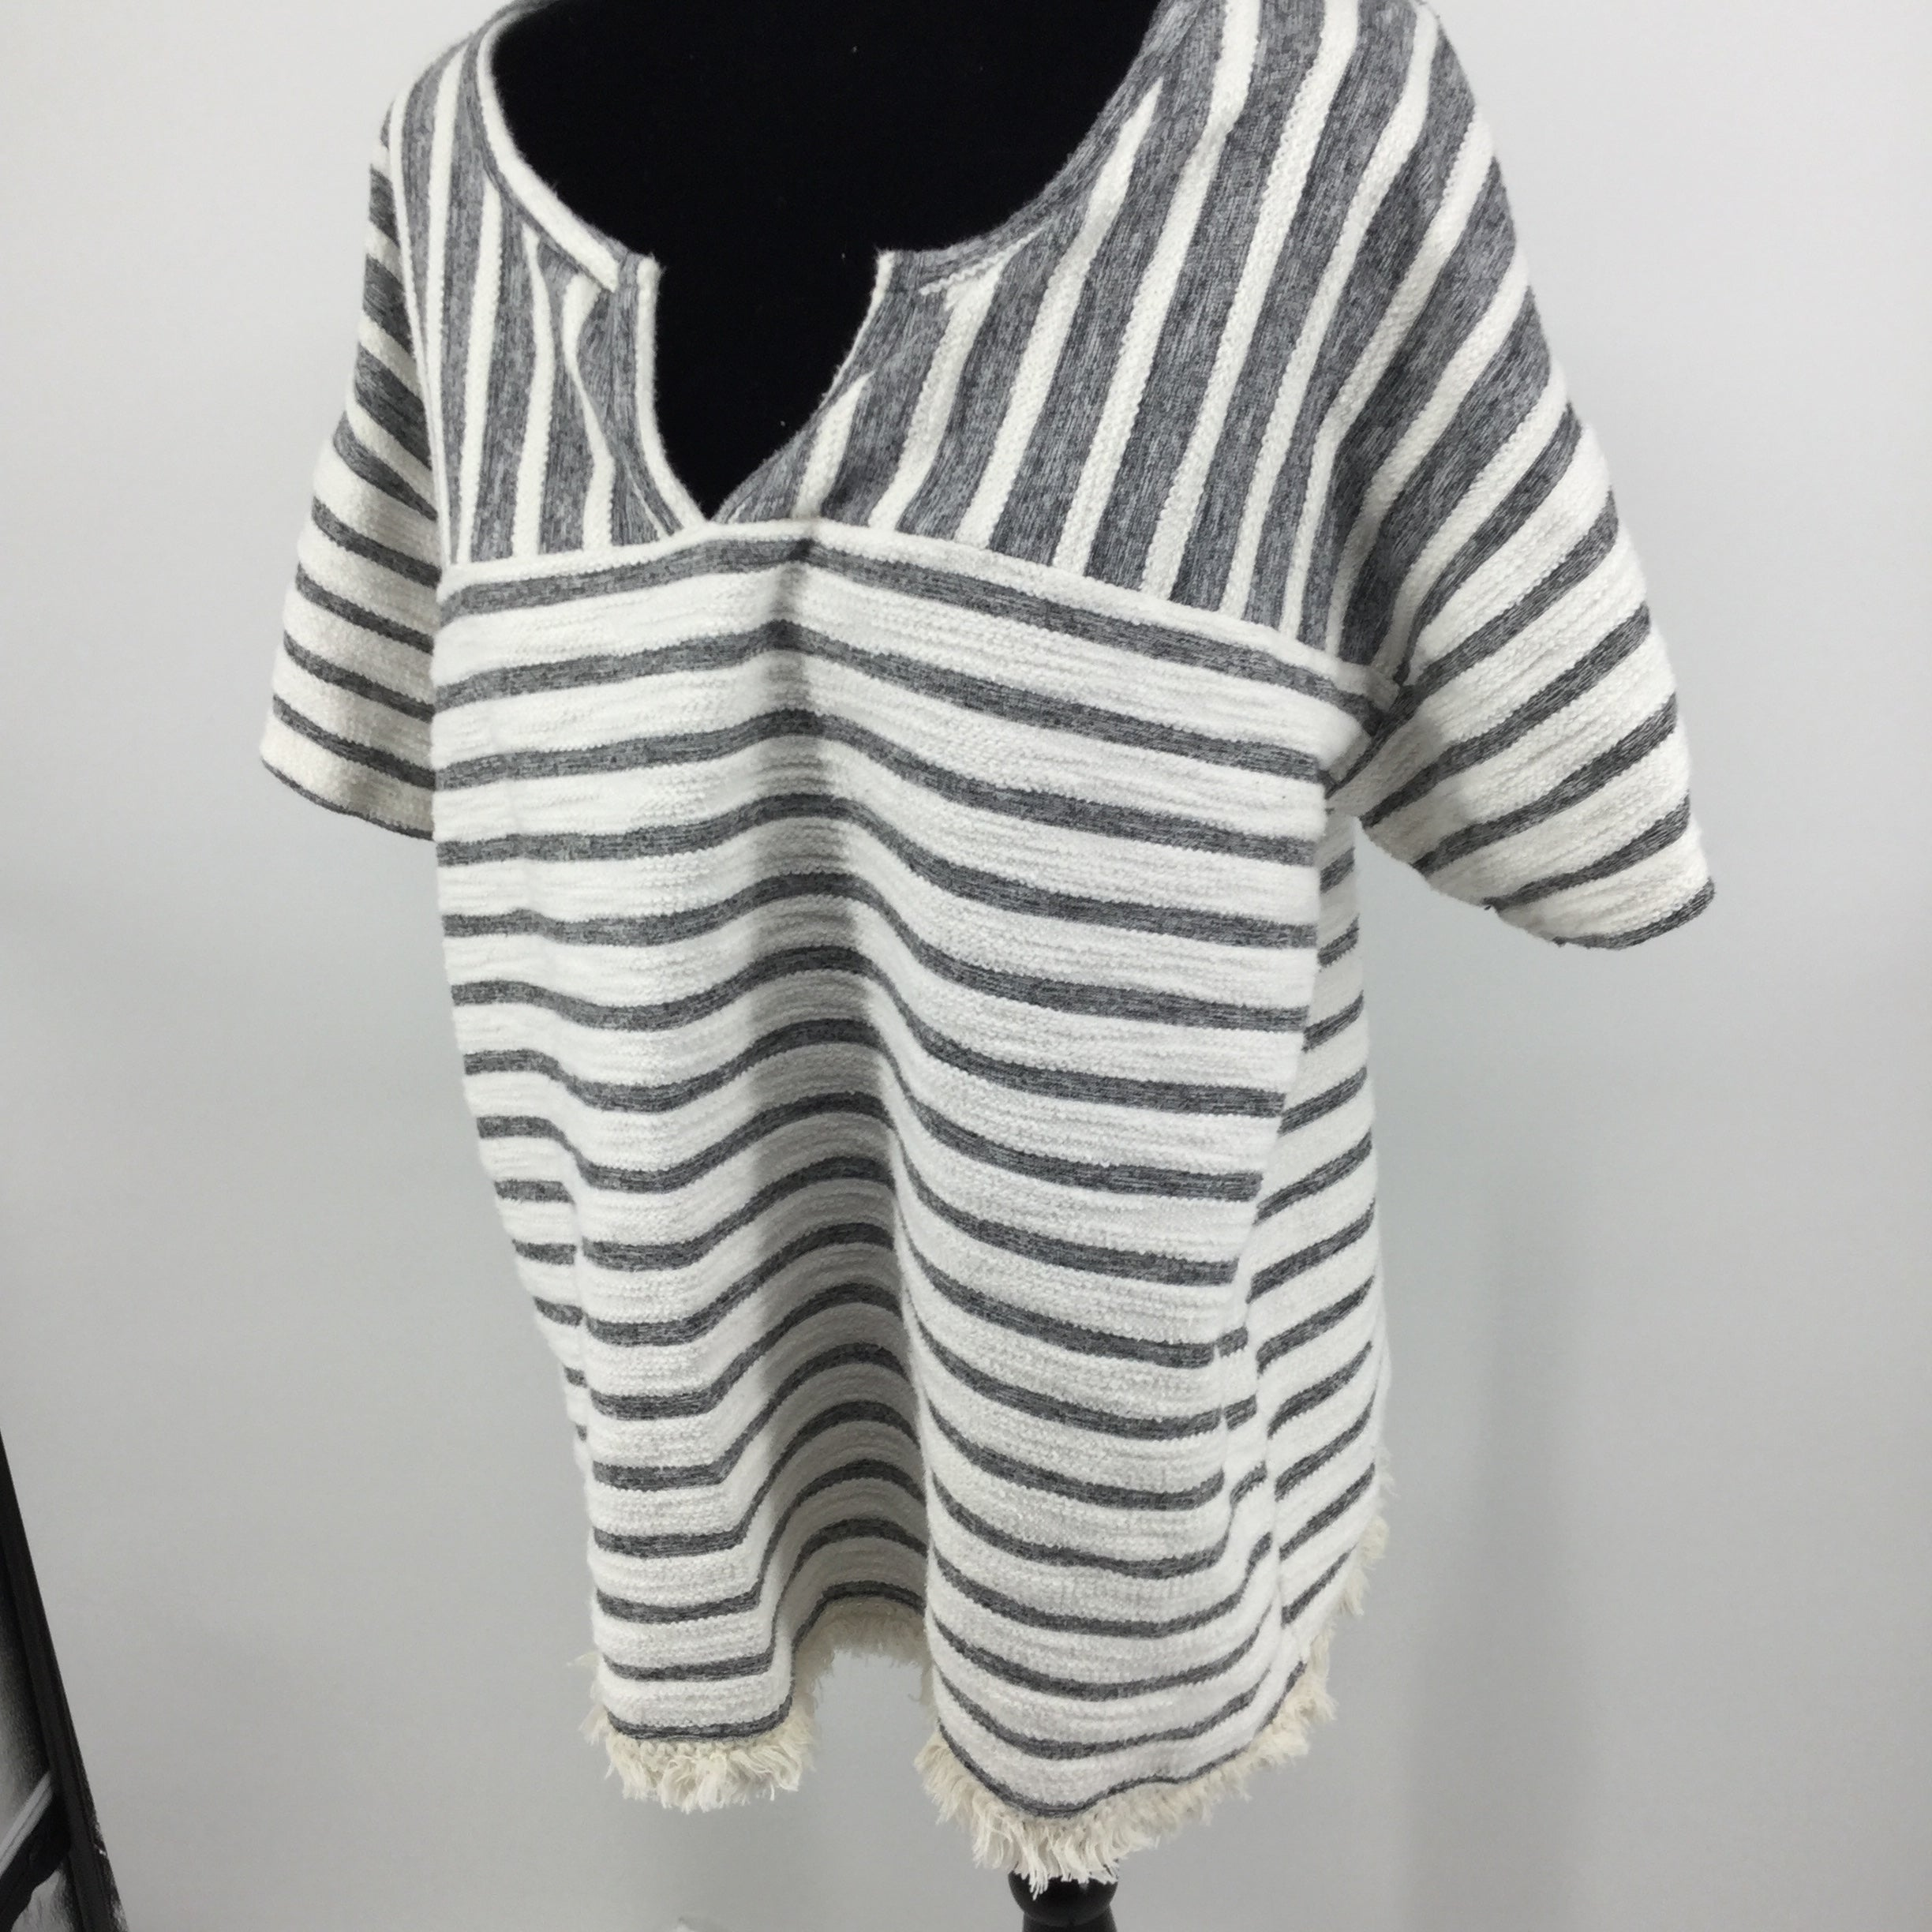 APPAREL,TOPS - COOL COMFORT IN THIS ANN TAYLOR LOFT LOUNGE TOP WITH FRINGE HEMLINE